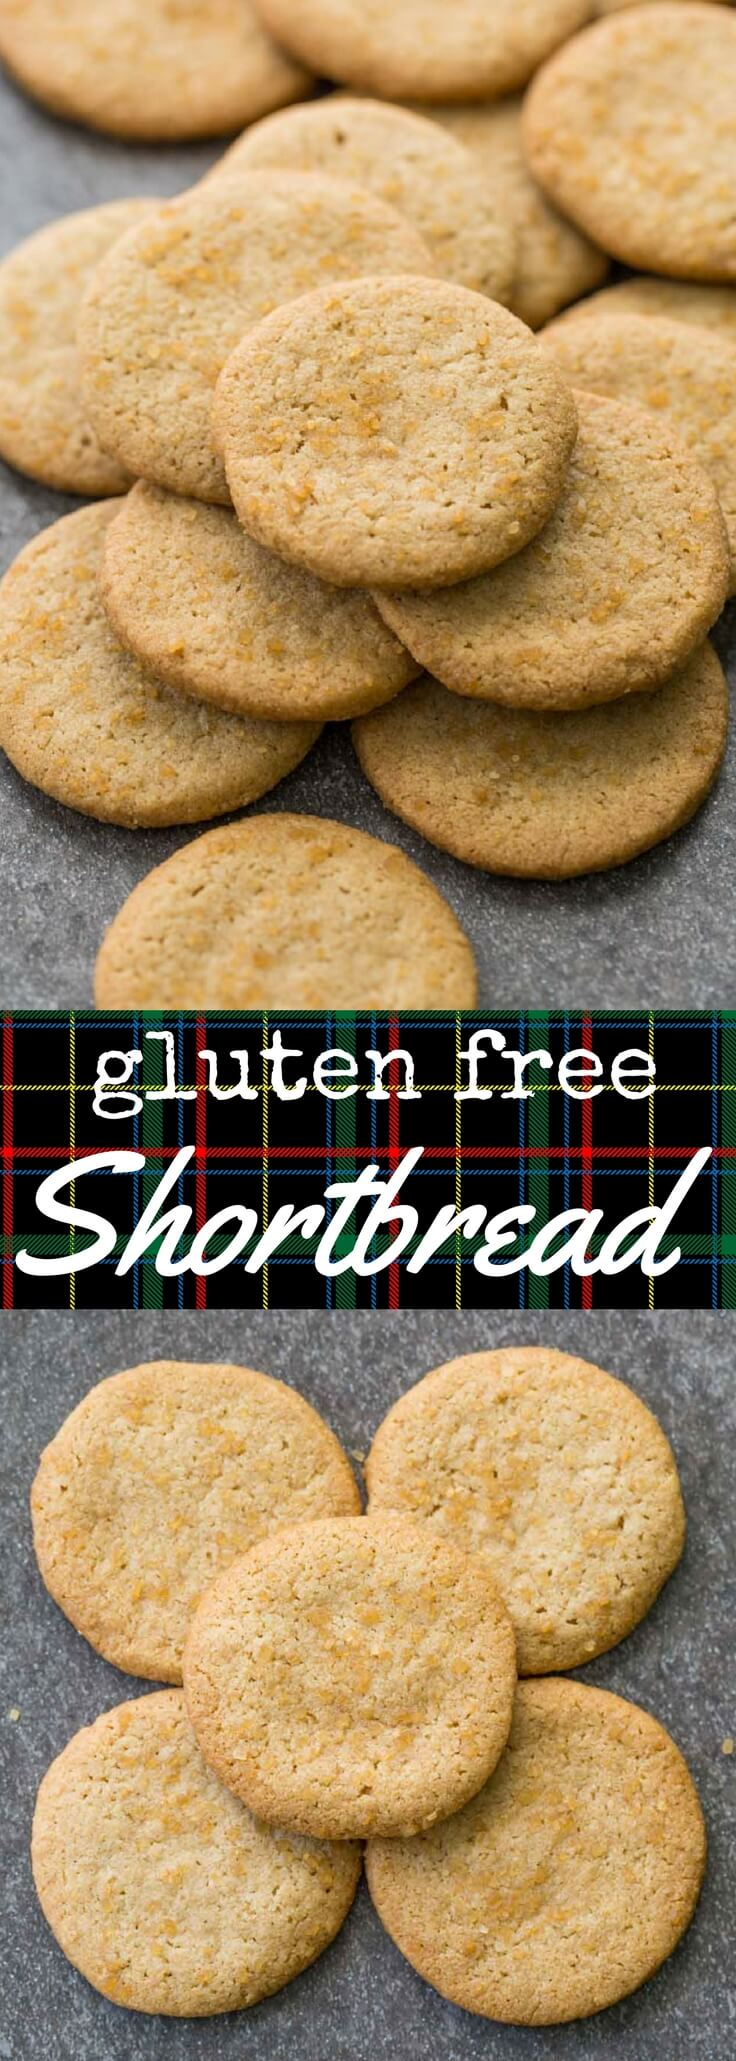 Traditional style gluten free shortbread made with only five ingredients: gluten free oat flour, butter, vanilla, sugar, and salt.  Pure and simple, with a perfect crunch and a tantalizingly buttery aroma.